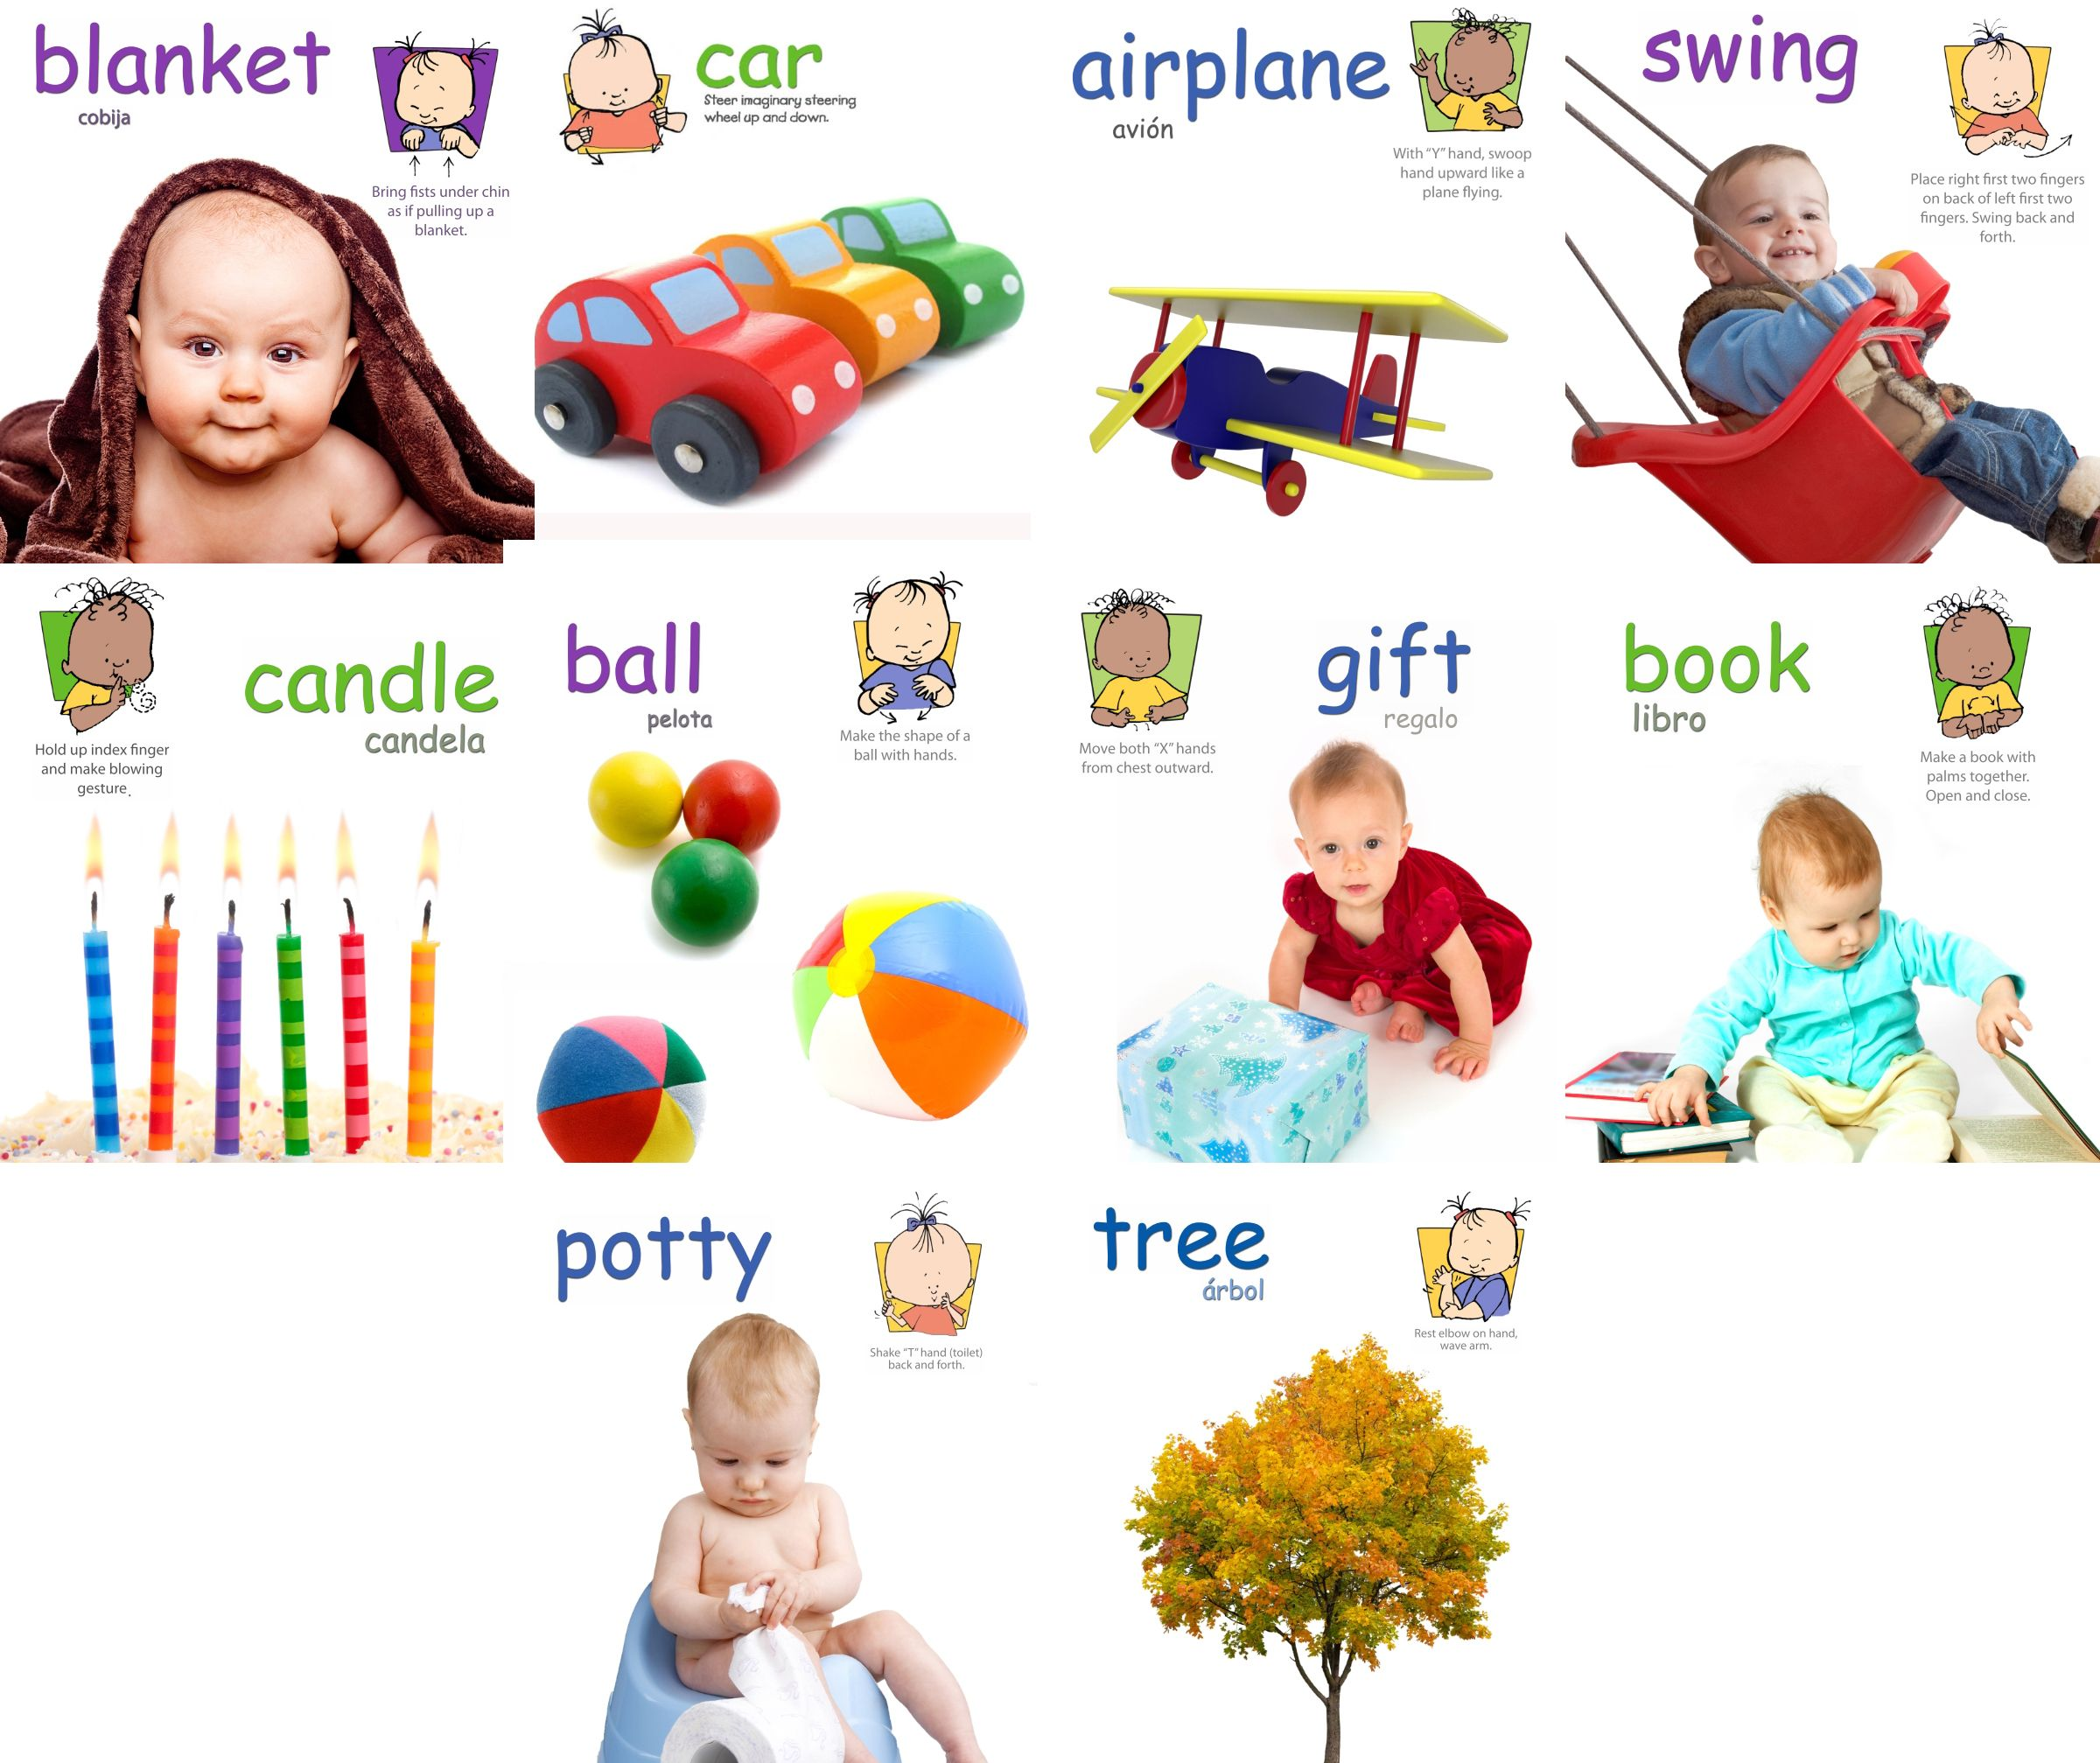 Baby Signs® Printable Poster Pack With Signs For Airplane